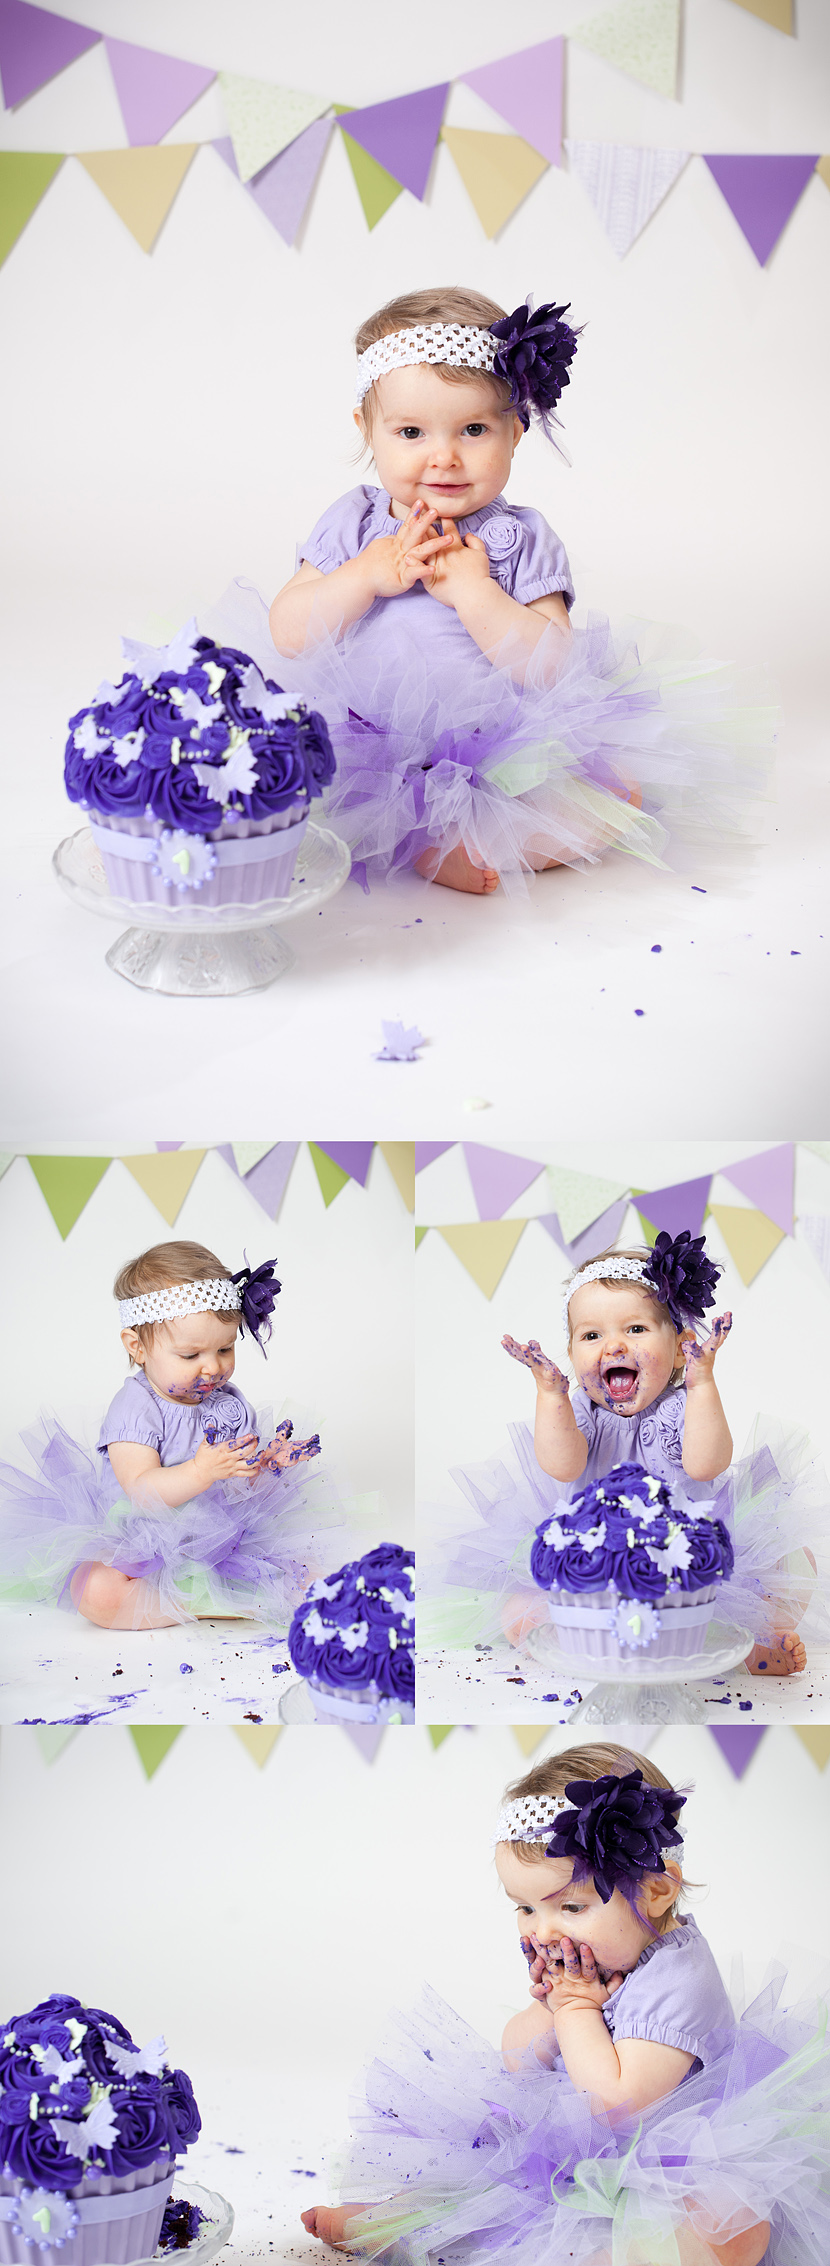 Lower Mainland cake smash photography